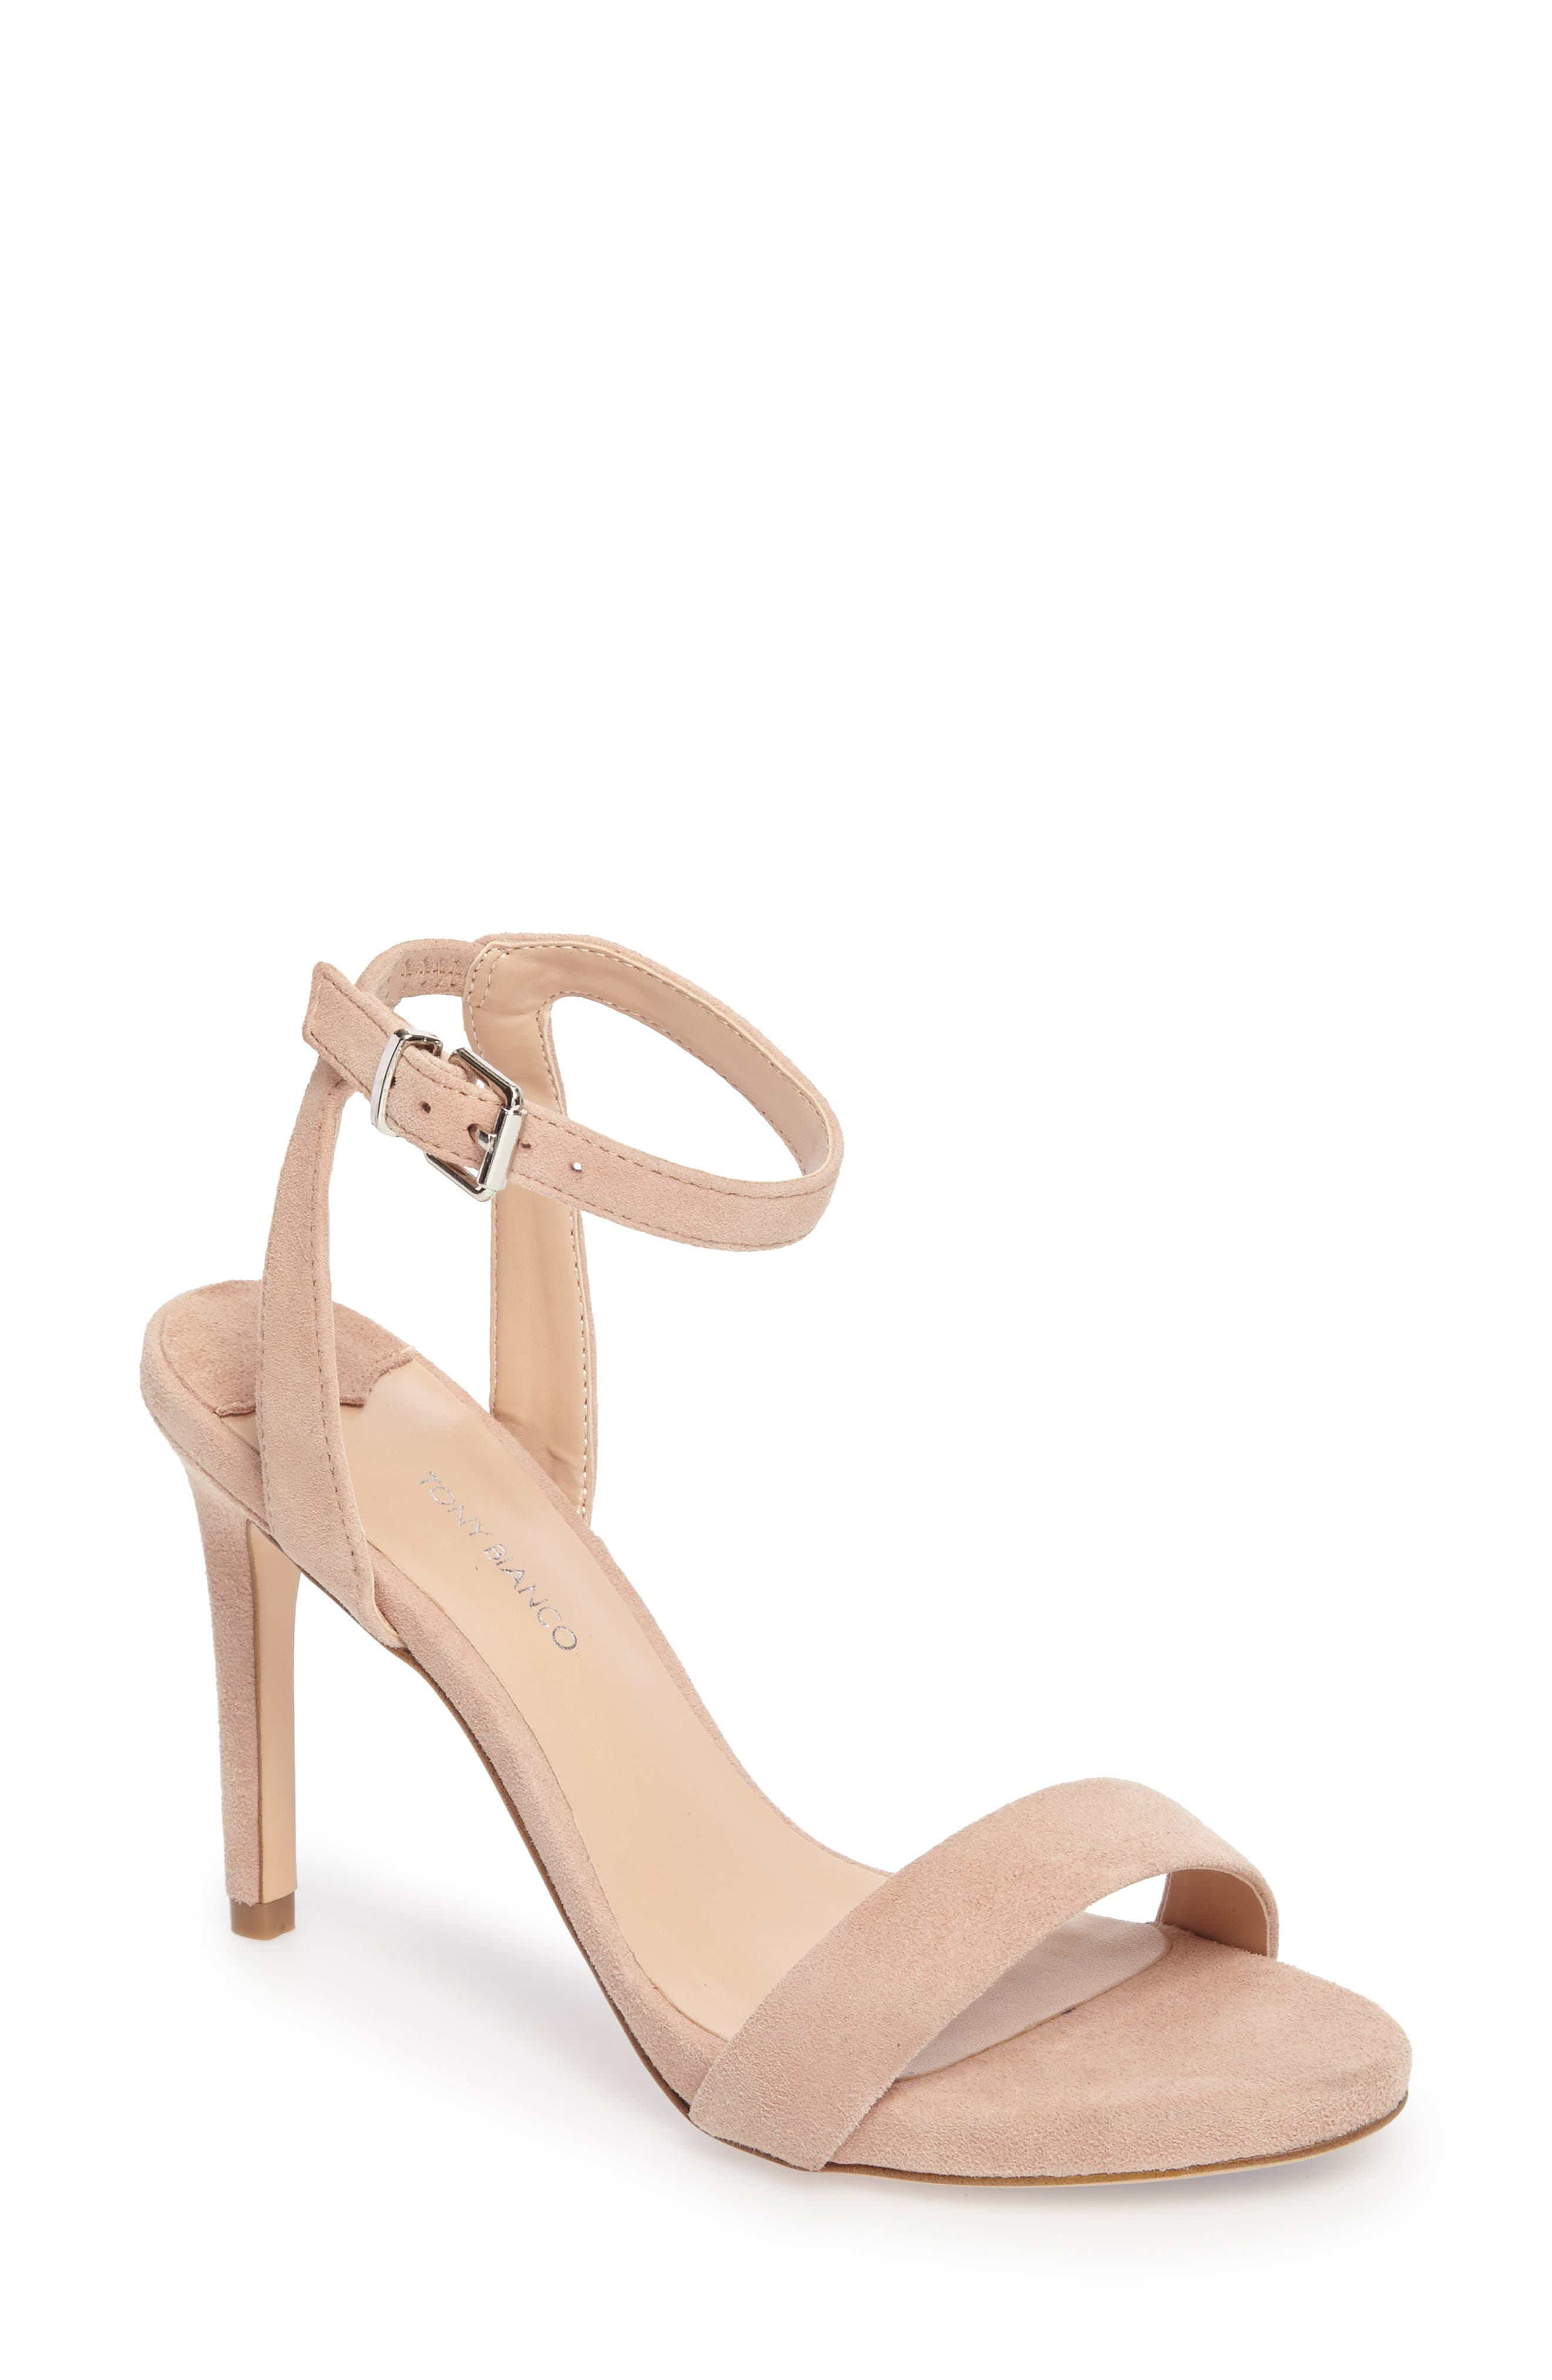 Char Ankle Cuff Sandal,                             Main thumbnail 1, color,                             Blush Suede